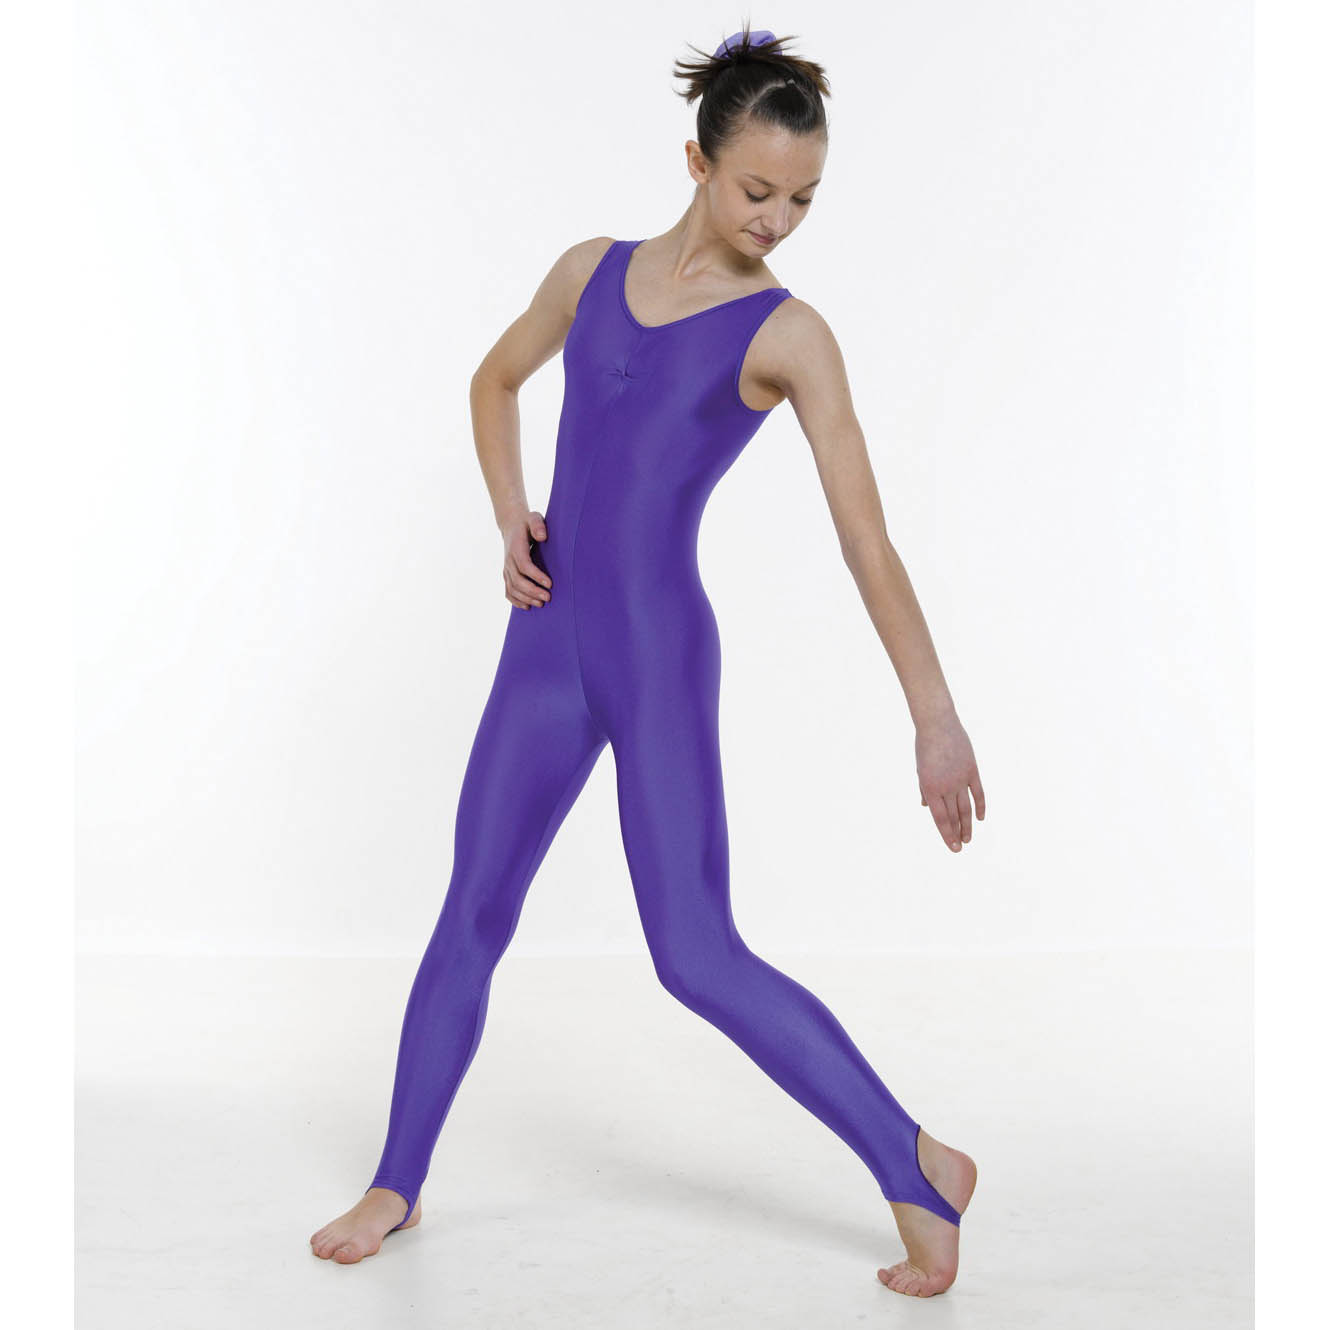 Catsuit For Kids. To choose durable, comfortable catsuit for kids online, DHgate Australia site is a great destination. We offer varieties of cheap sexy slimming catsuit & kids catsuit black in fashion which contain the one satisfying your taste. Best black woman catsuit come from comparsion and our platform provides you simple way to compare in several dimensions.